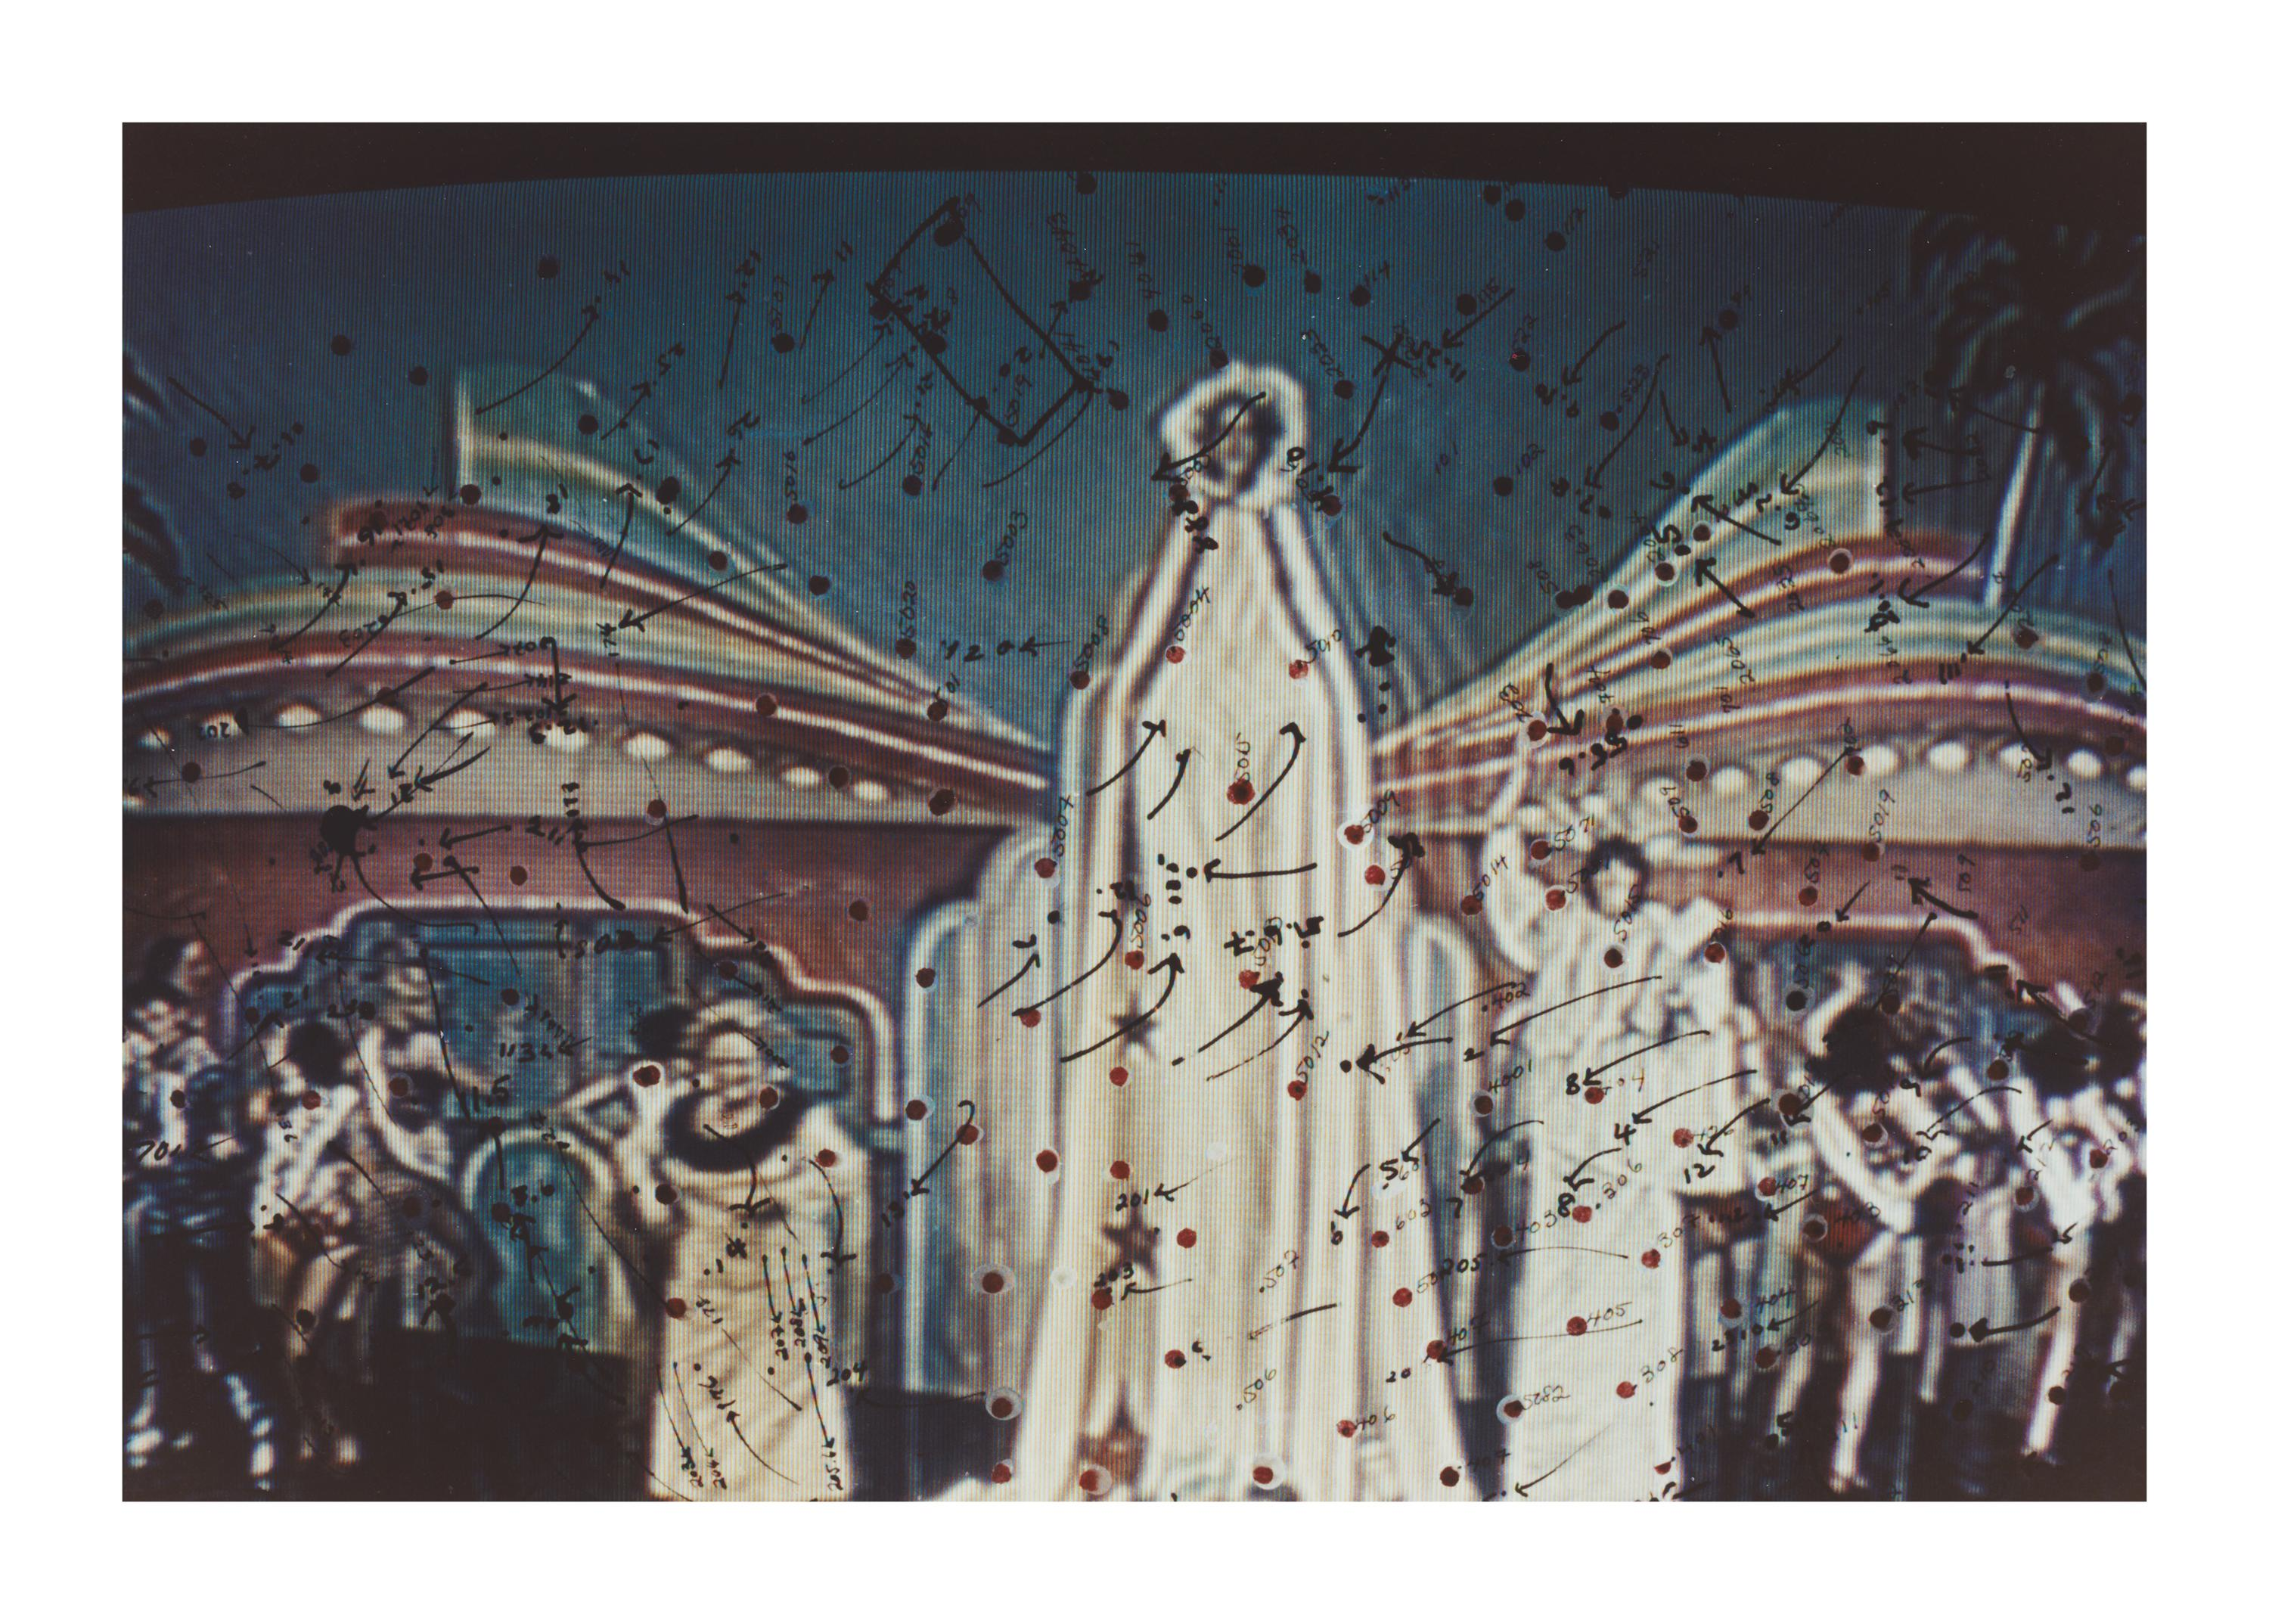 A tall, human-like form wearing white robes, is surrounded by multiple other humanoid figures Dozens of marks including arrows, dark red dots, and numbers appear to be hand-drawn over the image.